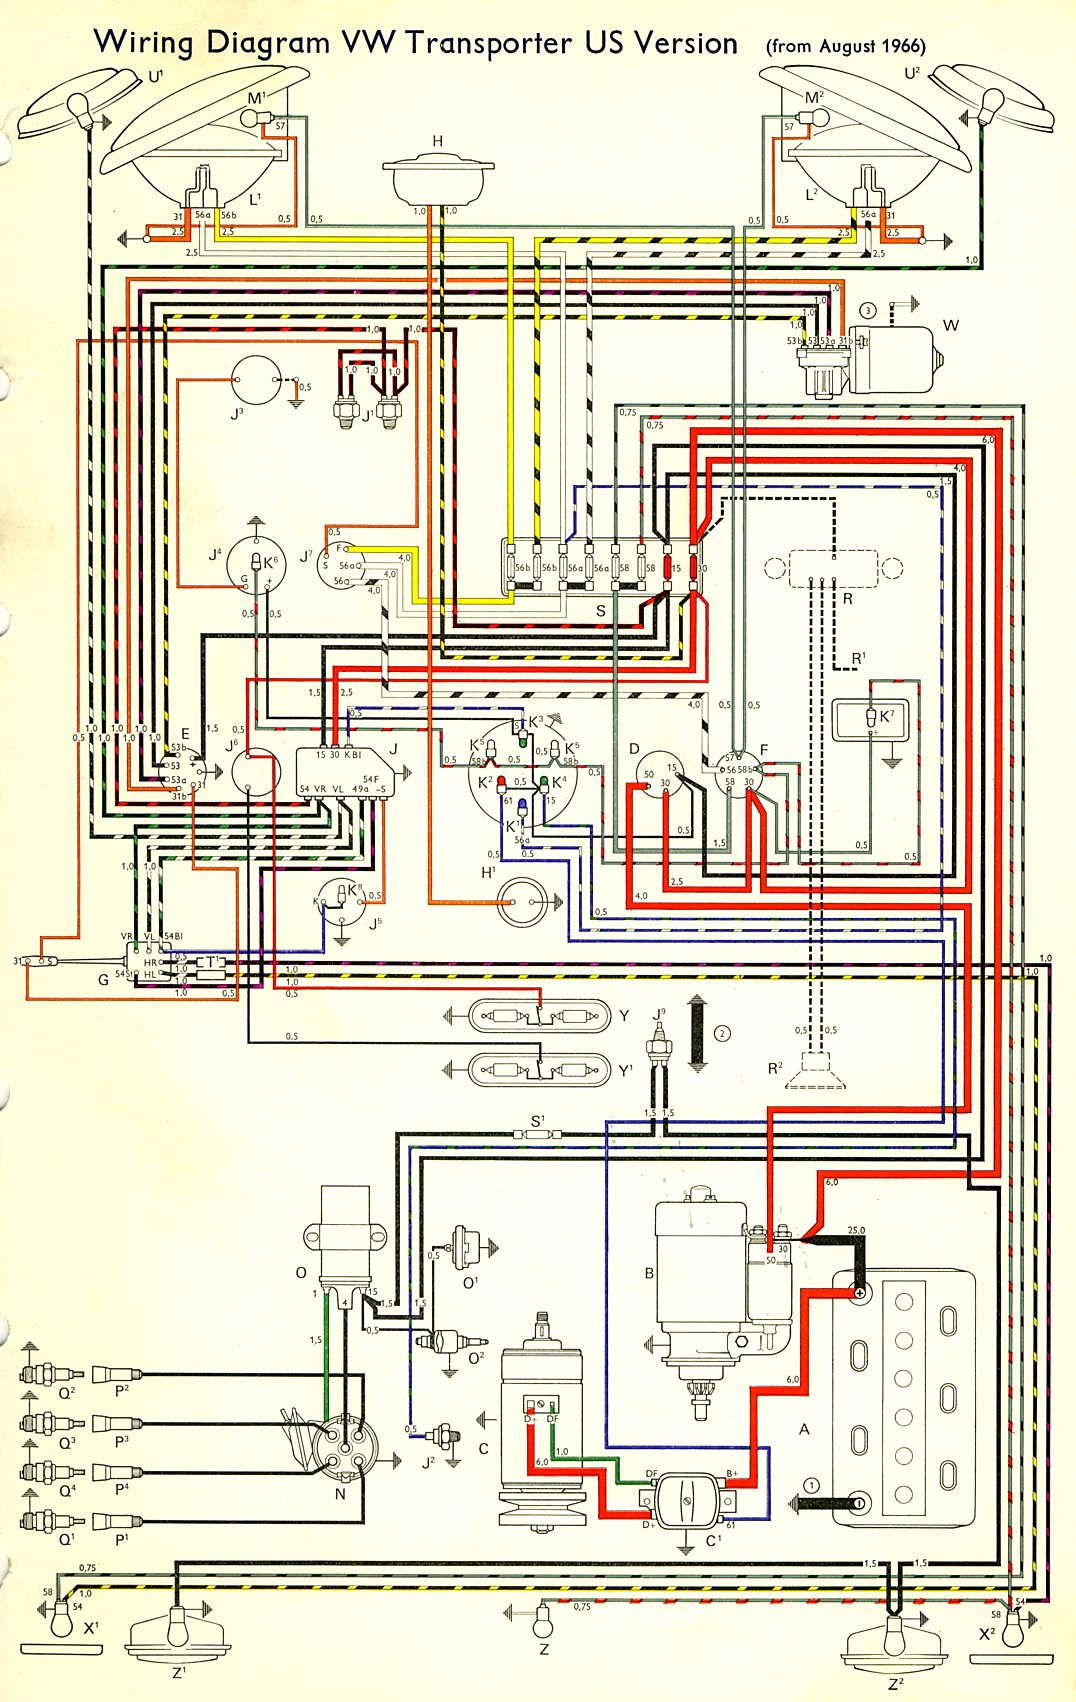 1962 Vw Wiring Diagram Schematics 1990 240sx Schematic Thesamba Com Type 2 Diagrams Ford